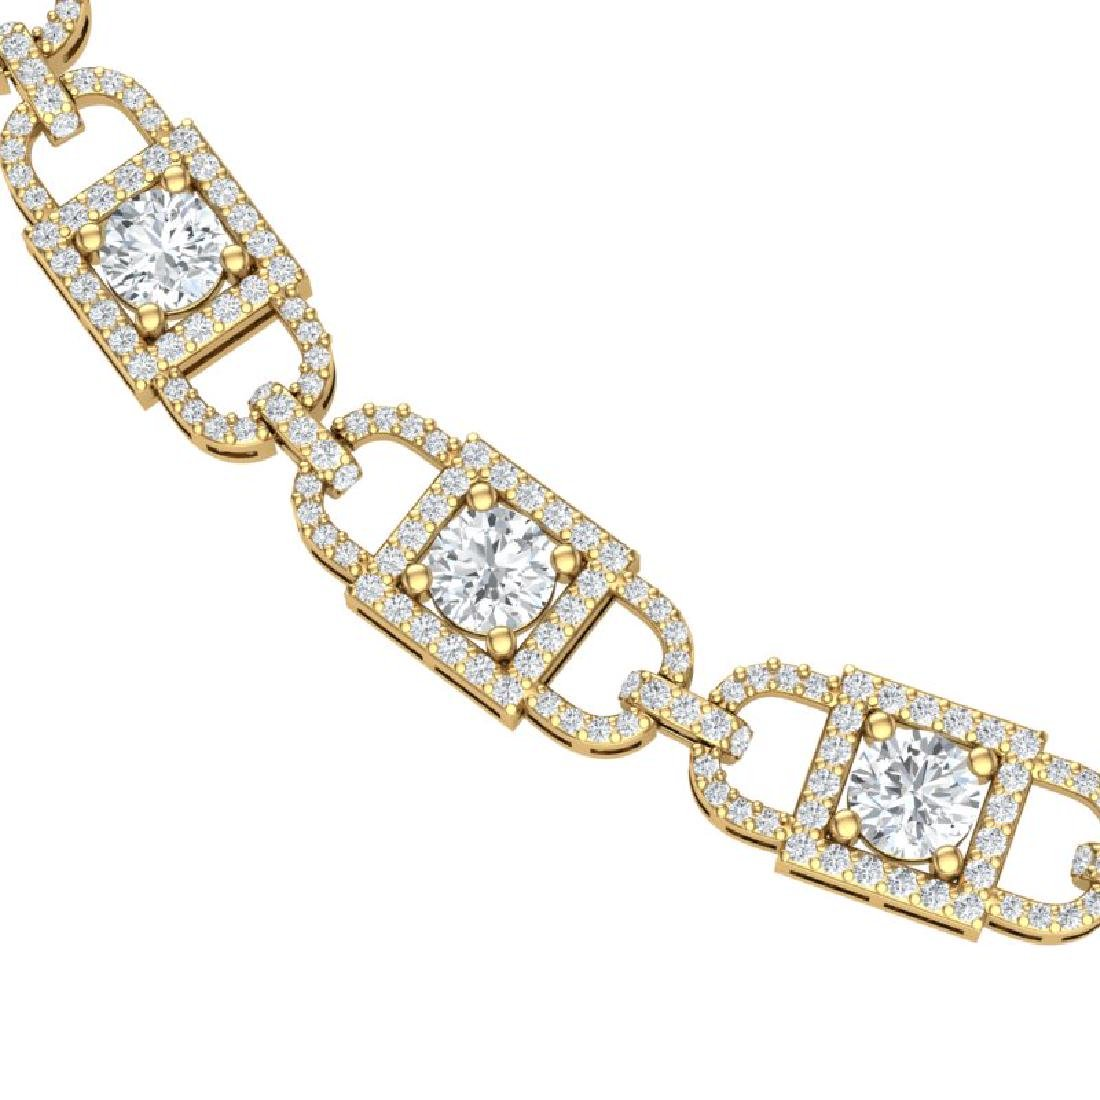 20 CTW Certified SI/I Diamond Halo Necklace 18K Yellow - 2